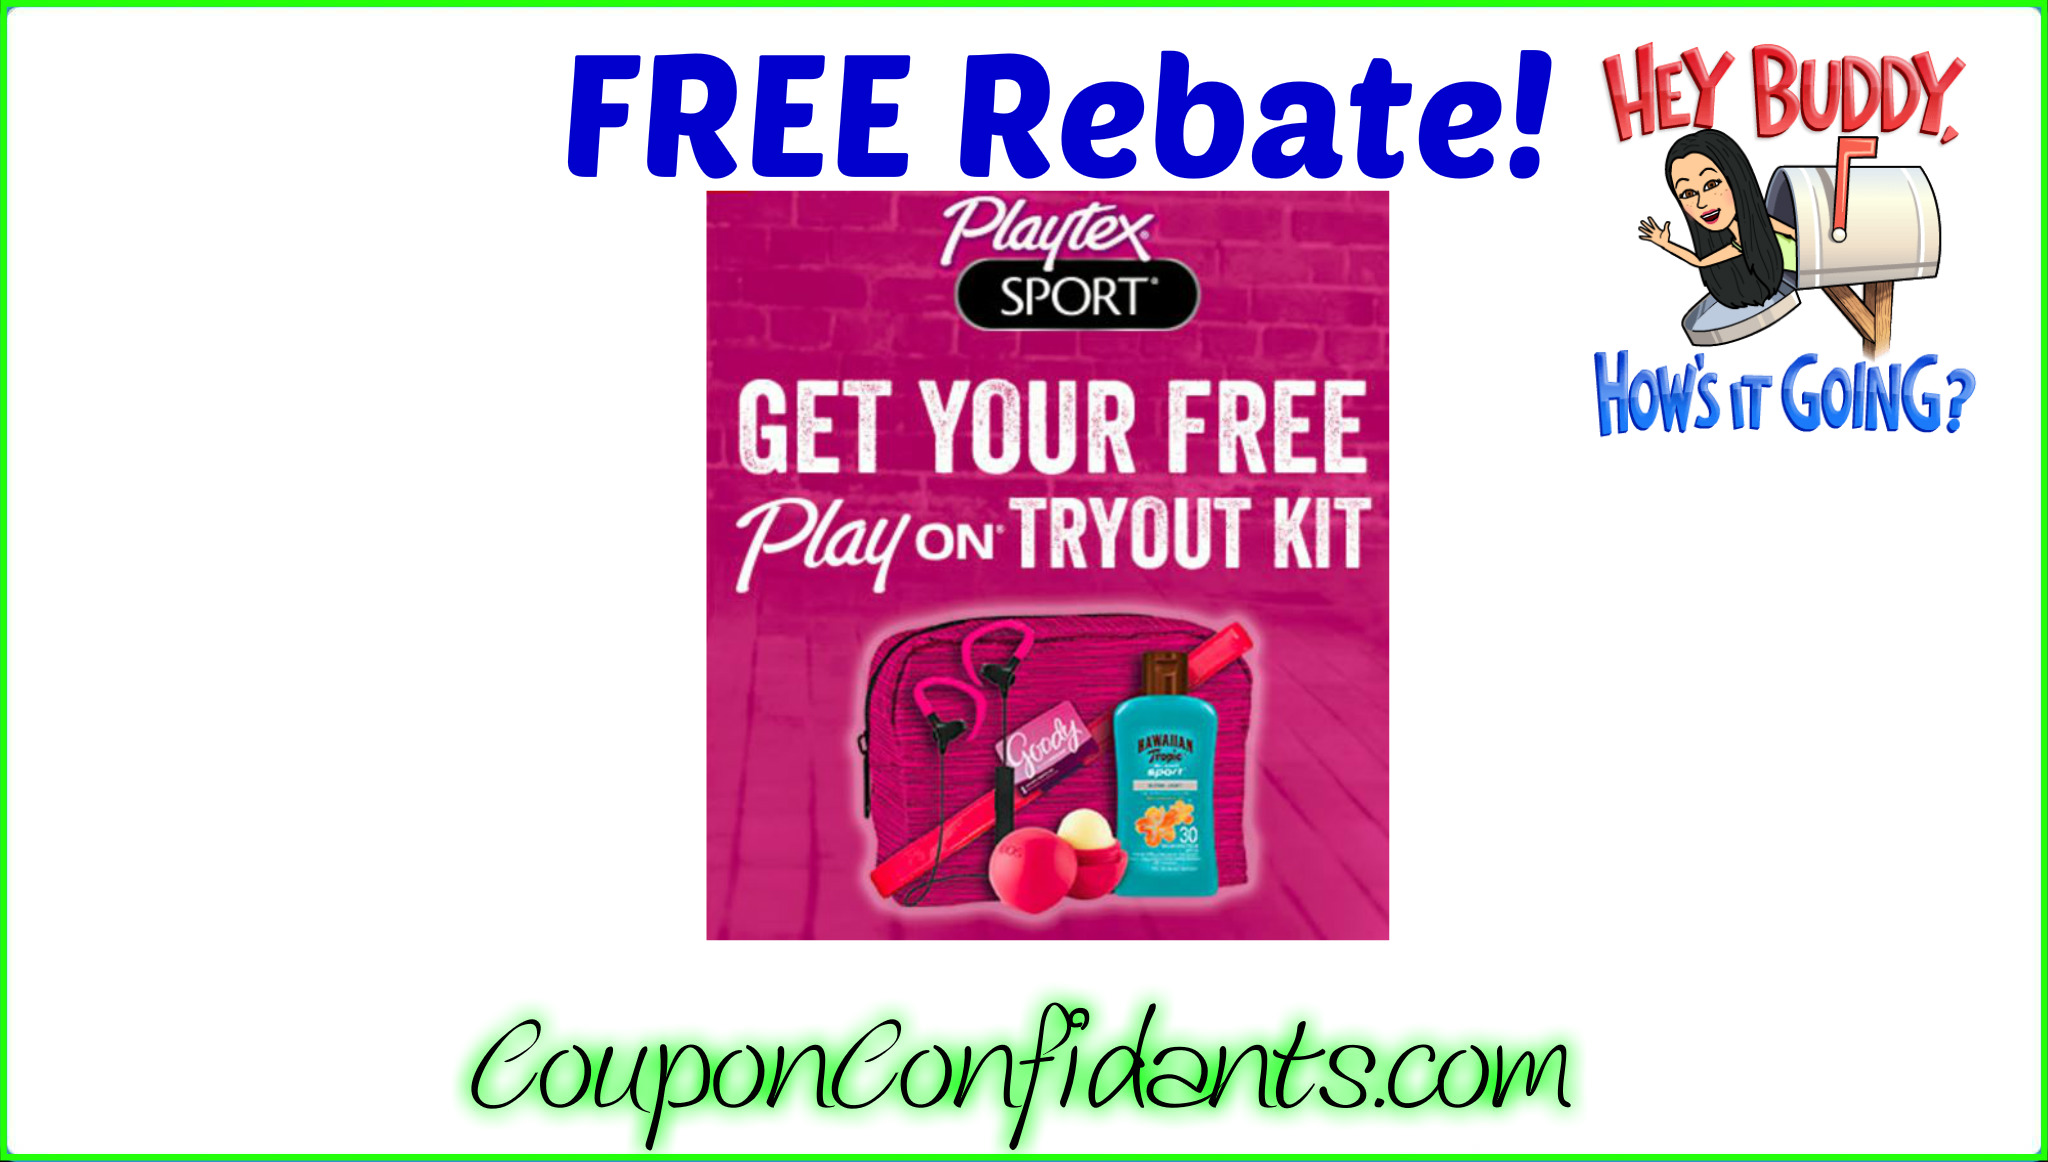 Playtex Goodie bag with purchase!!! NICE!!